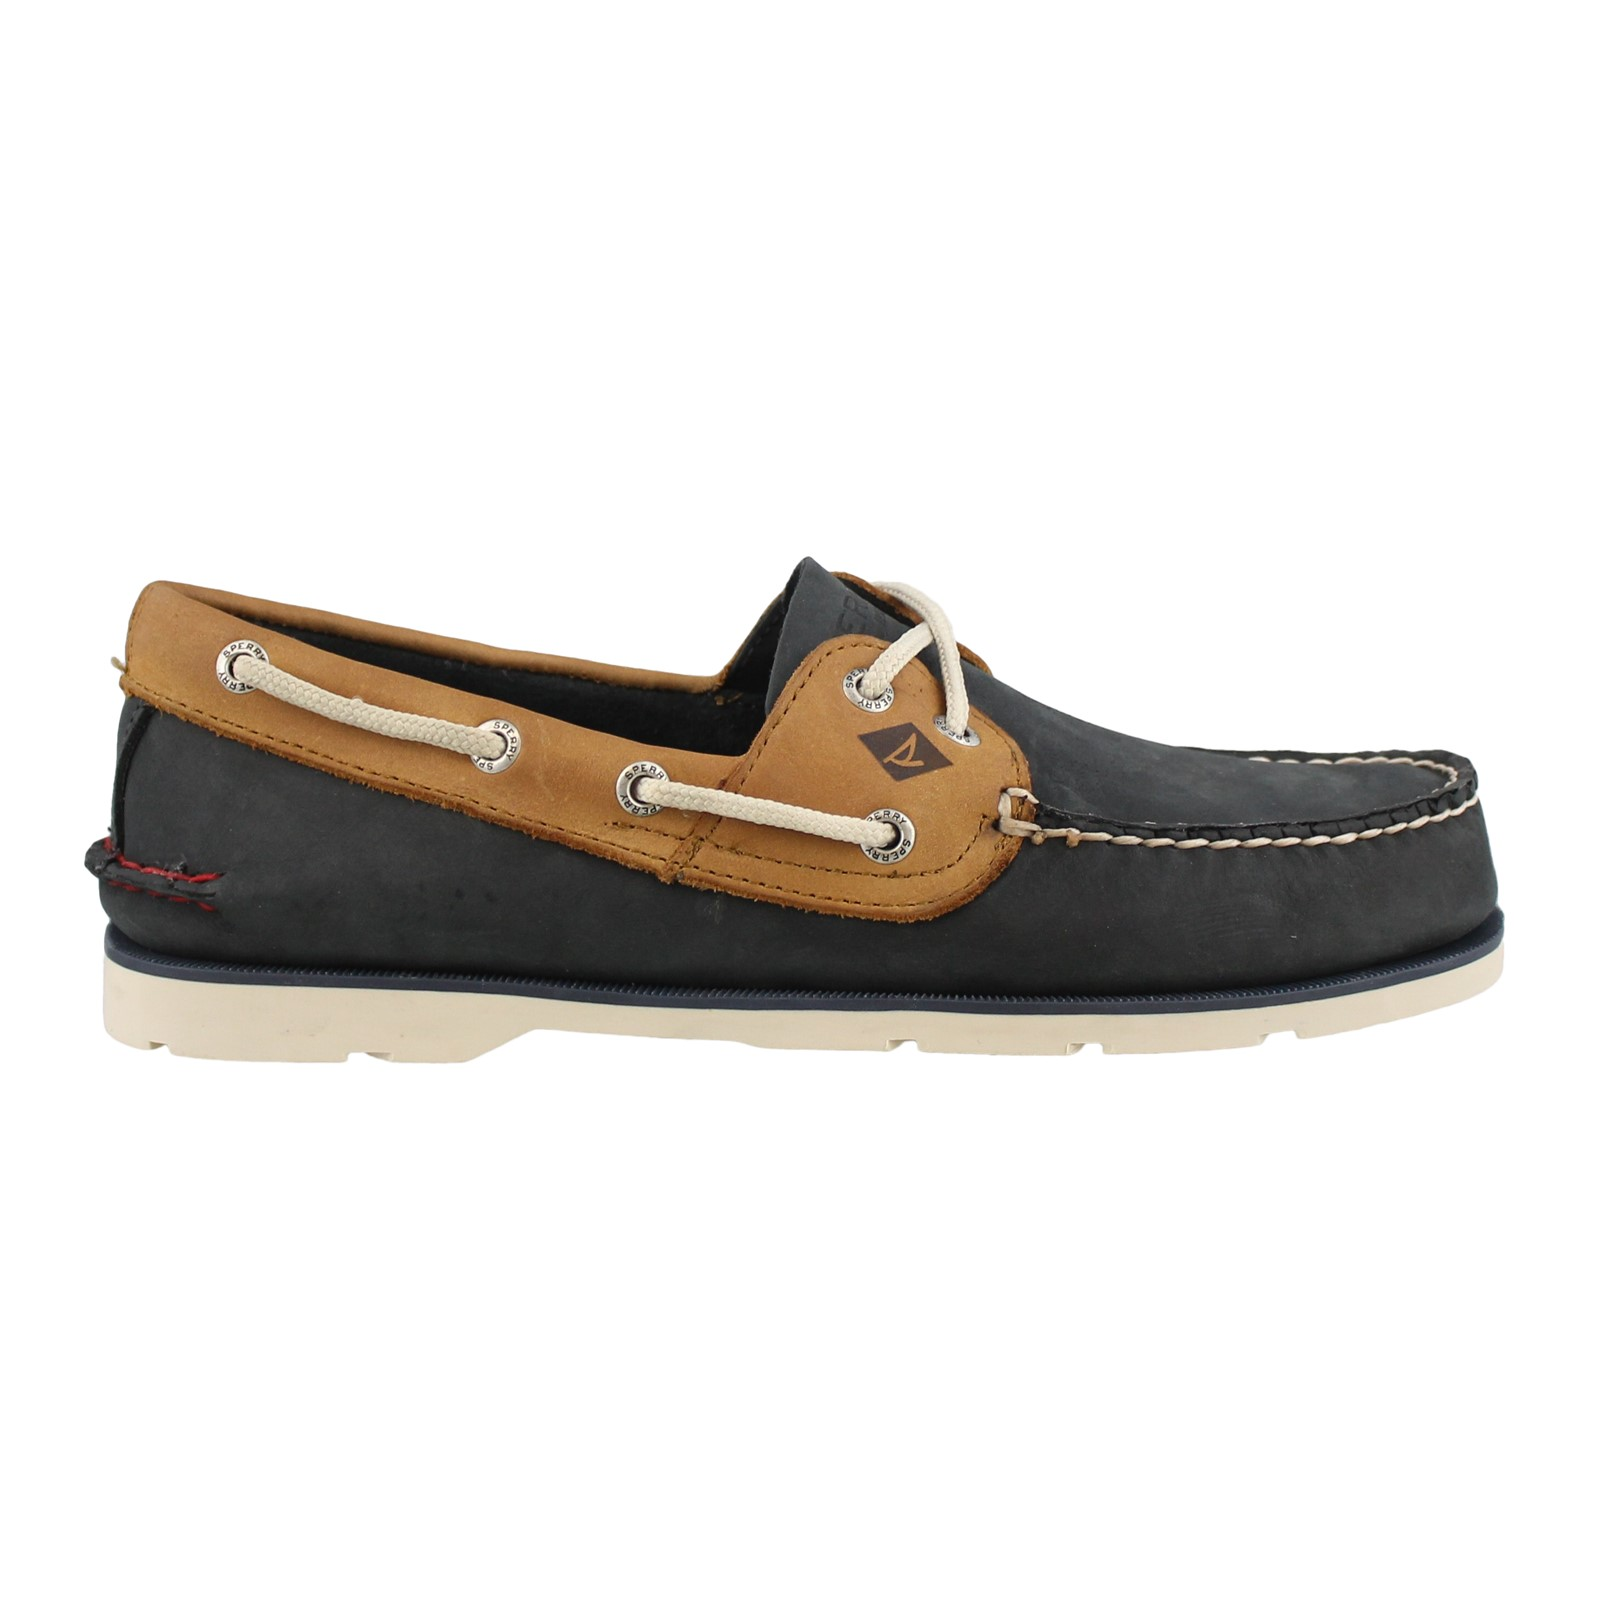 e425160c295 Men s Sperry